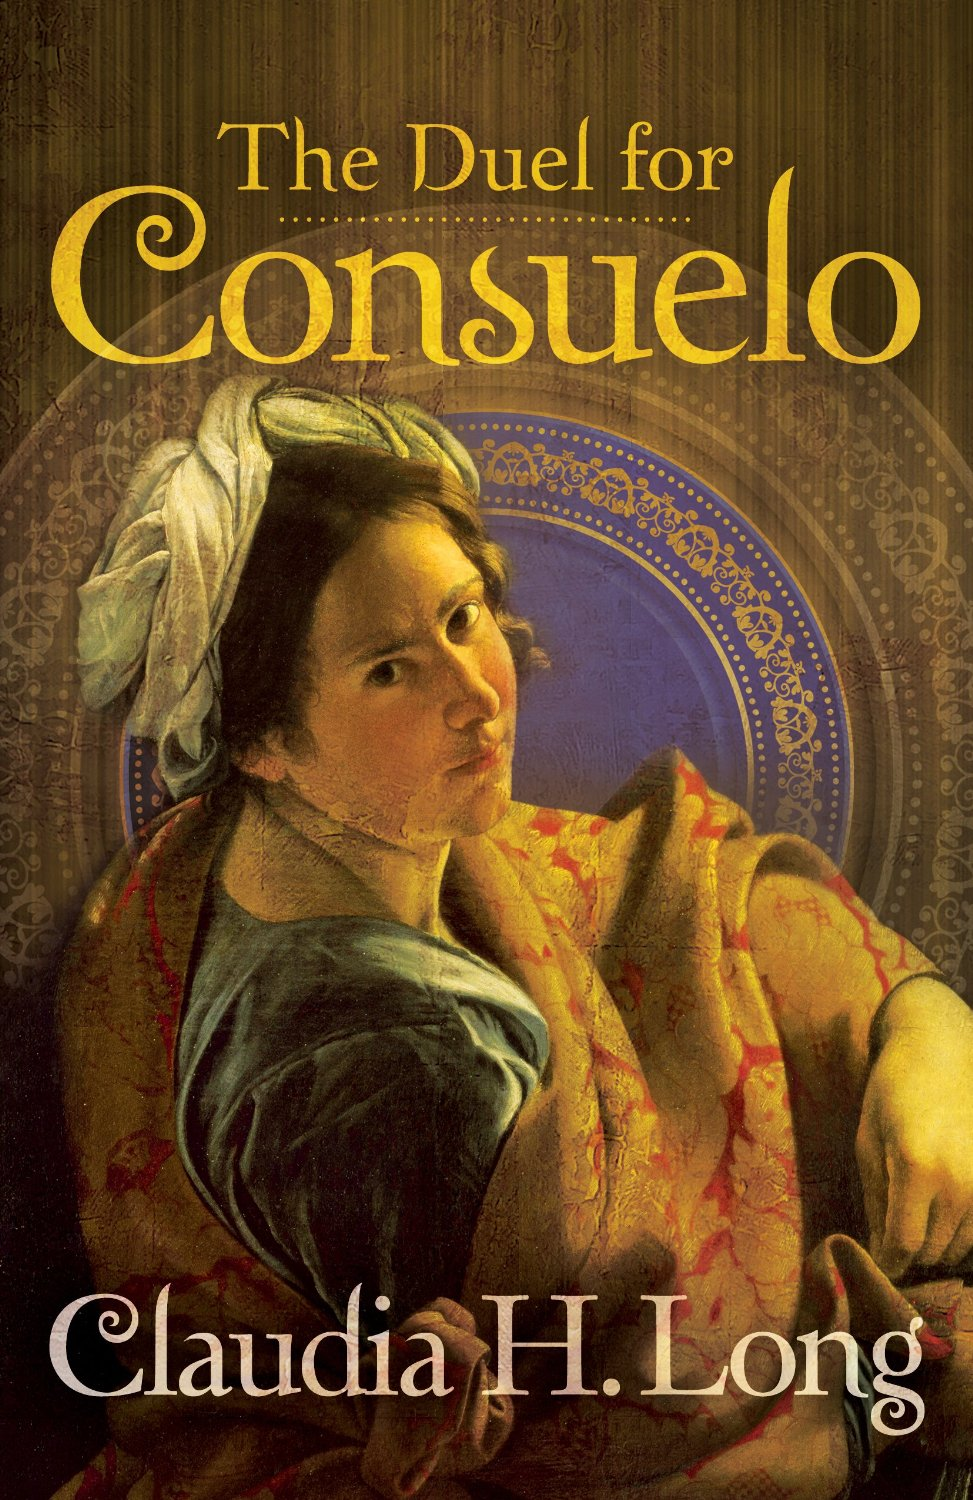 02_The Duel for Consuelo